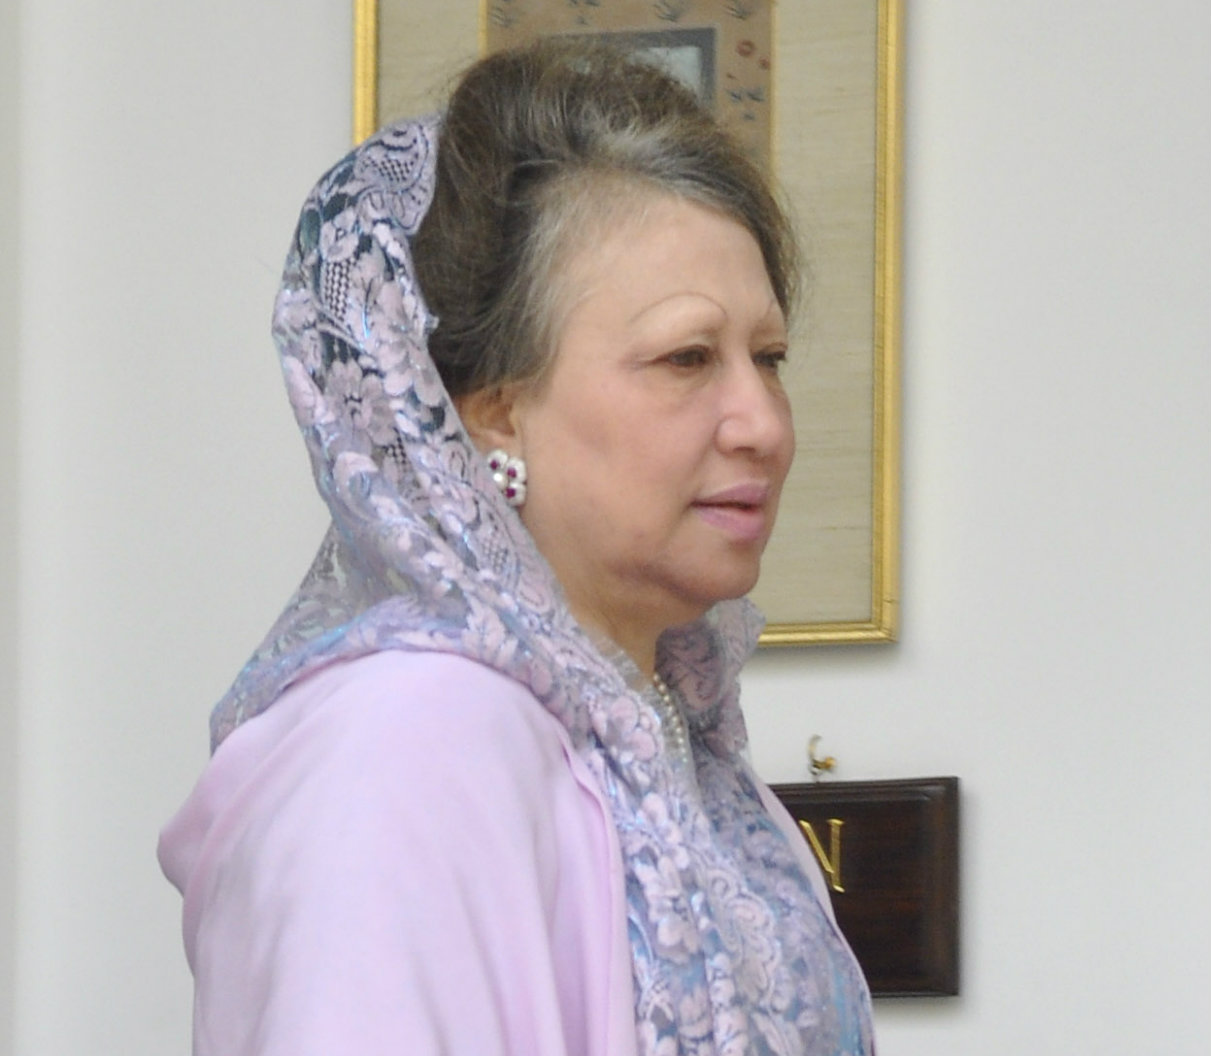 Former Bangladesh Prime Minister Khaleda Zia is currently serving jail terms in two graft cases